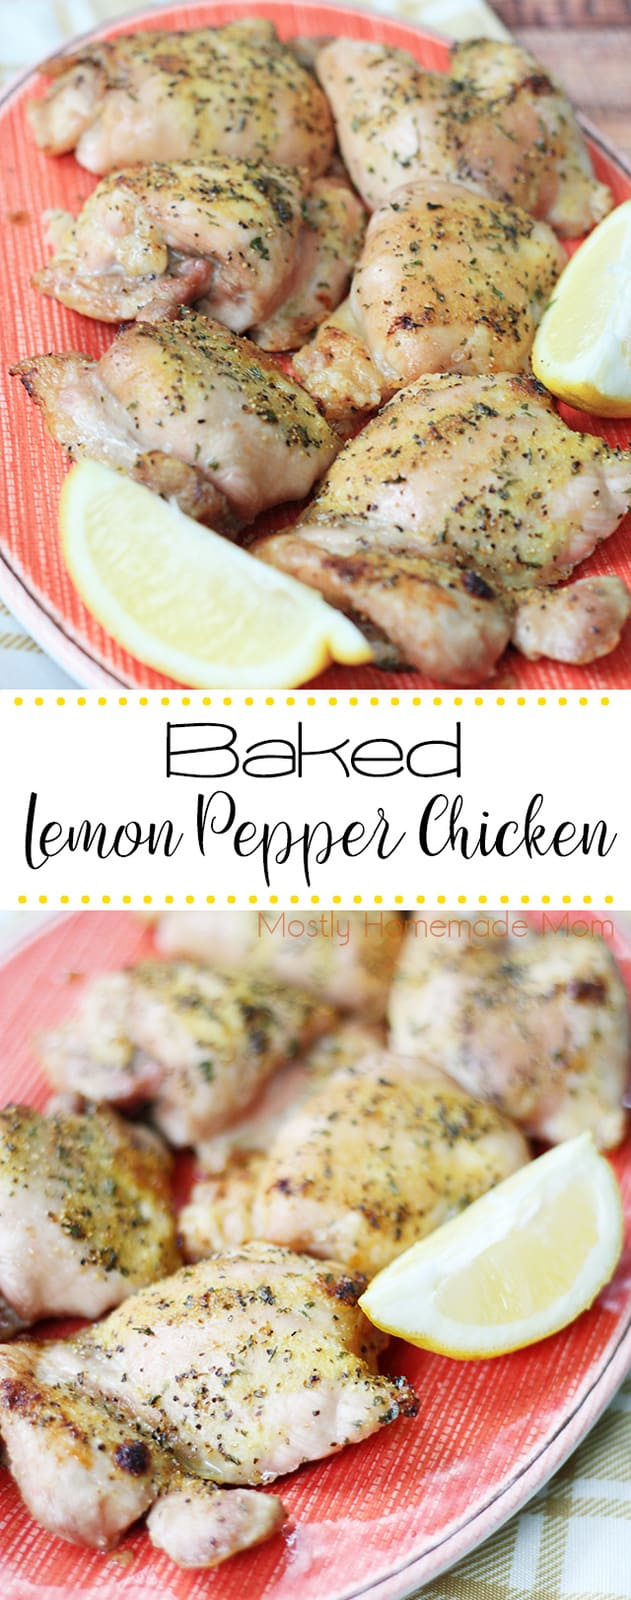 Baked Lemon Pepper Chicken - the perfect weeknight meal! Chicken thighs with lemon pepper seasoning and drizzled with lemon juice, absolutely delicious! #bakedchicken #recipe #lemonpepperchicken #weeknight #dinner